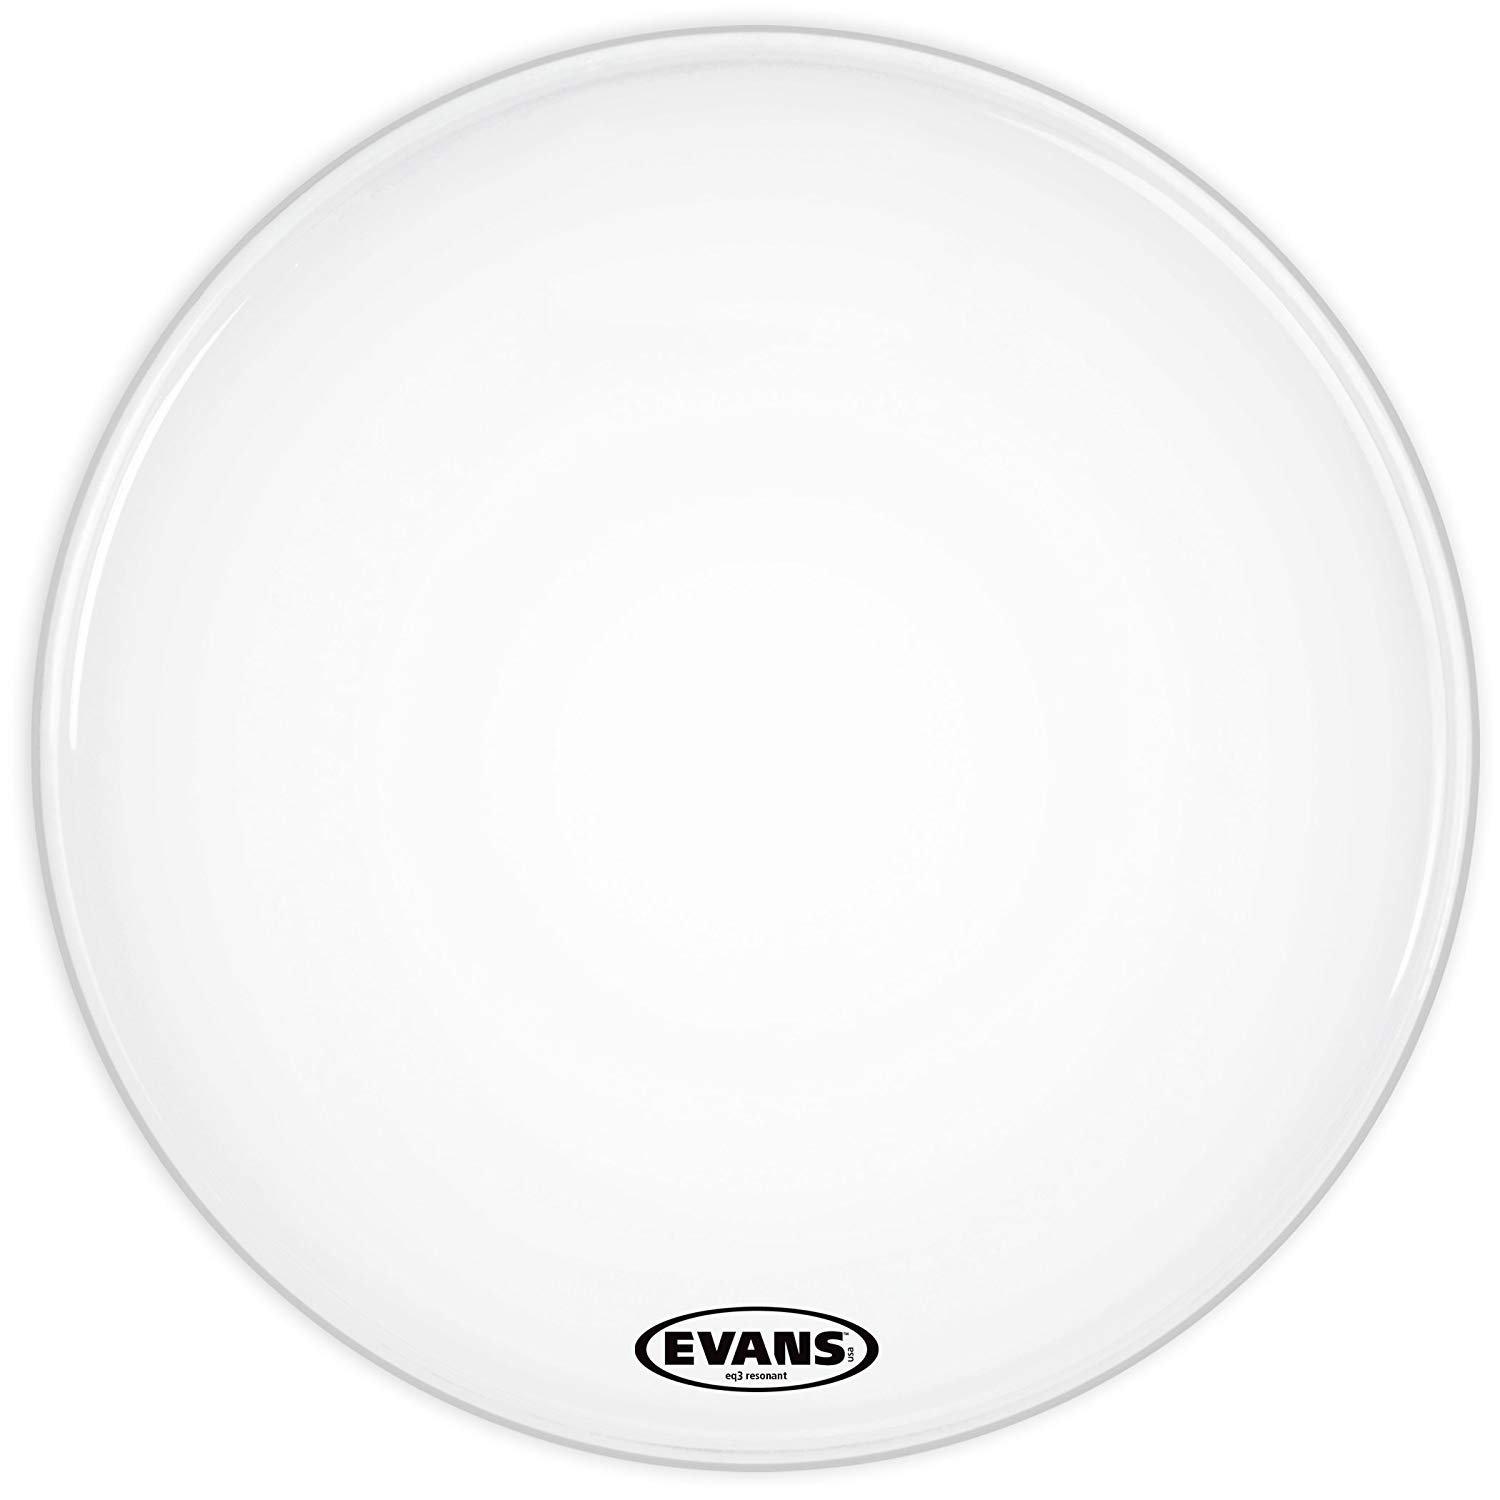 Evans 22 Eq3 Smooth White No Port Version Bass Drum Head